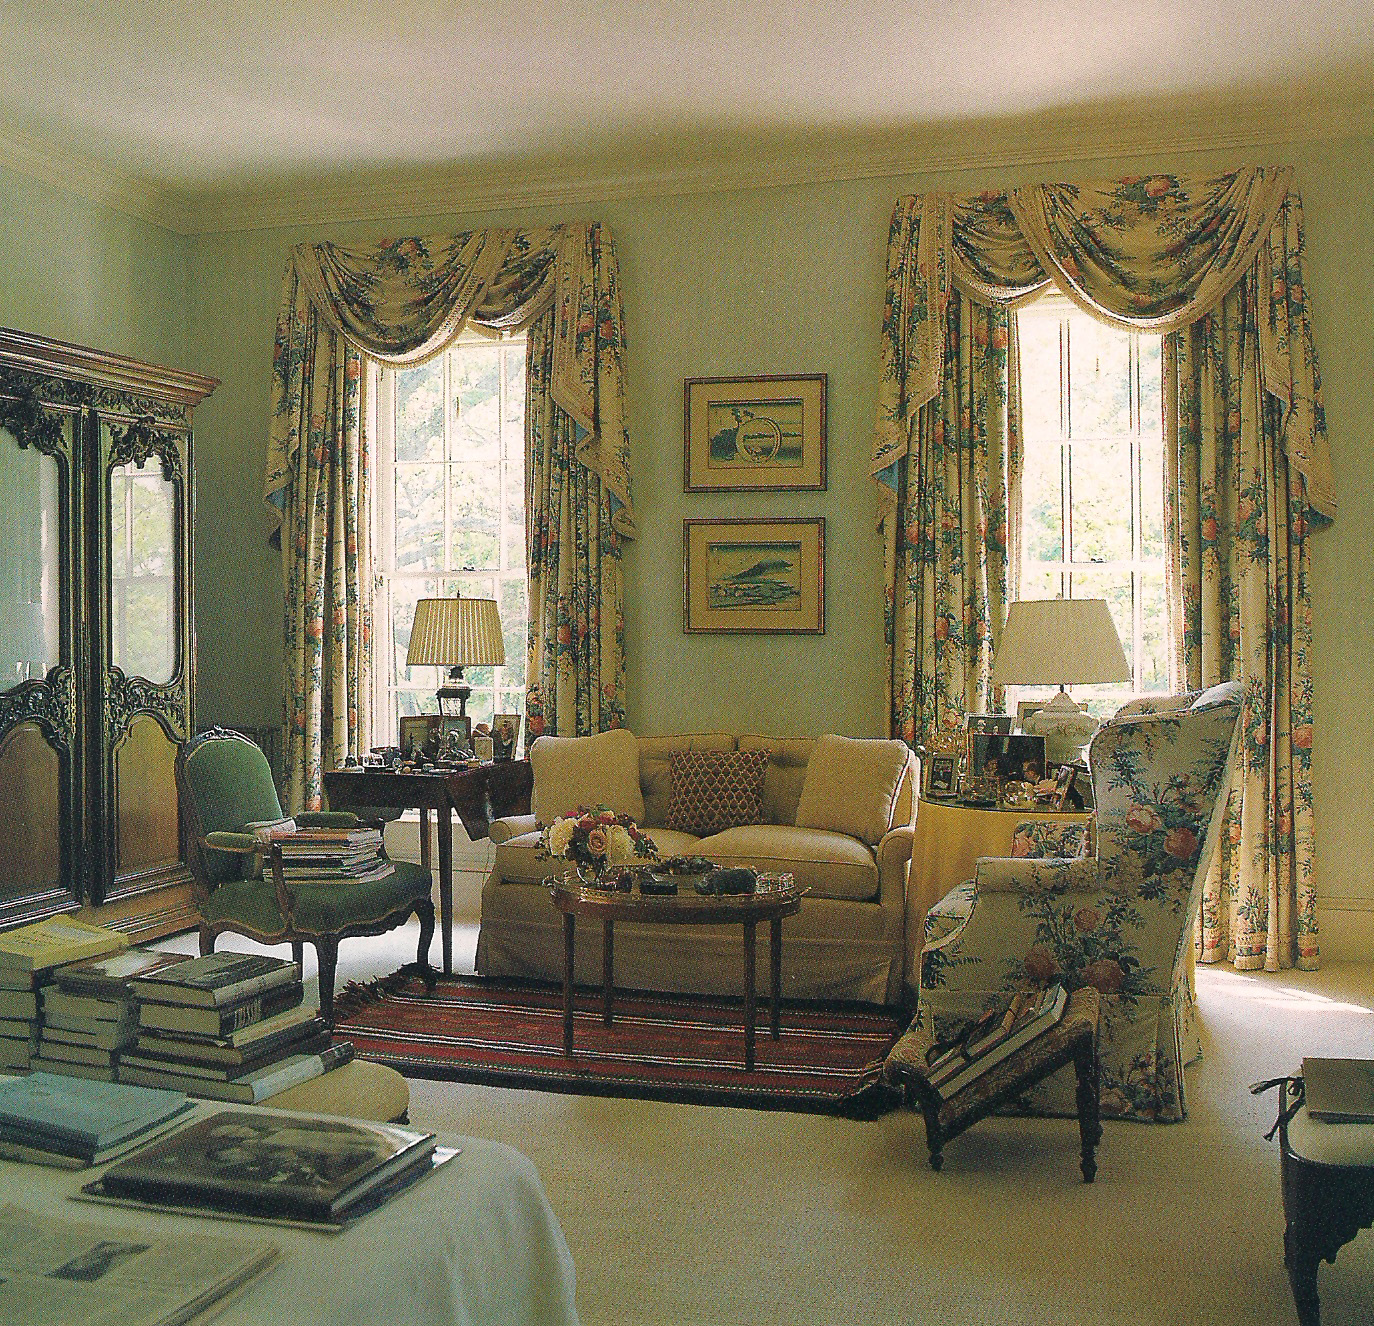 The devoted classicist katharine graham georgetown for The master bedroom tessa hadley